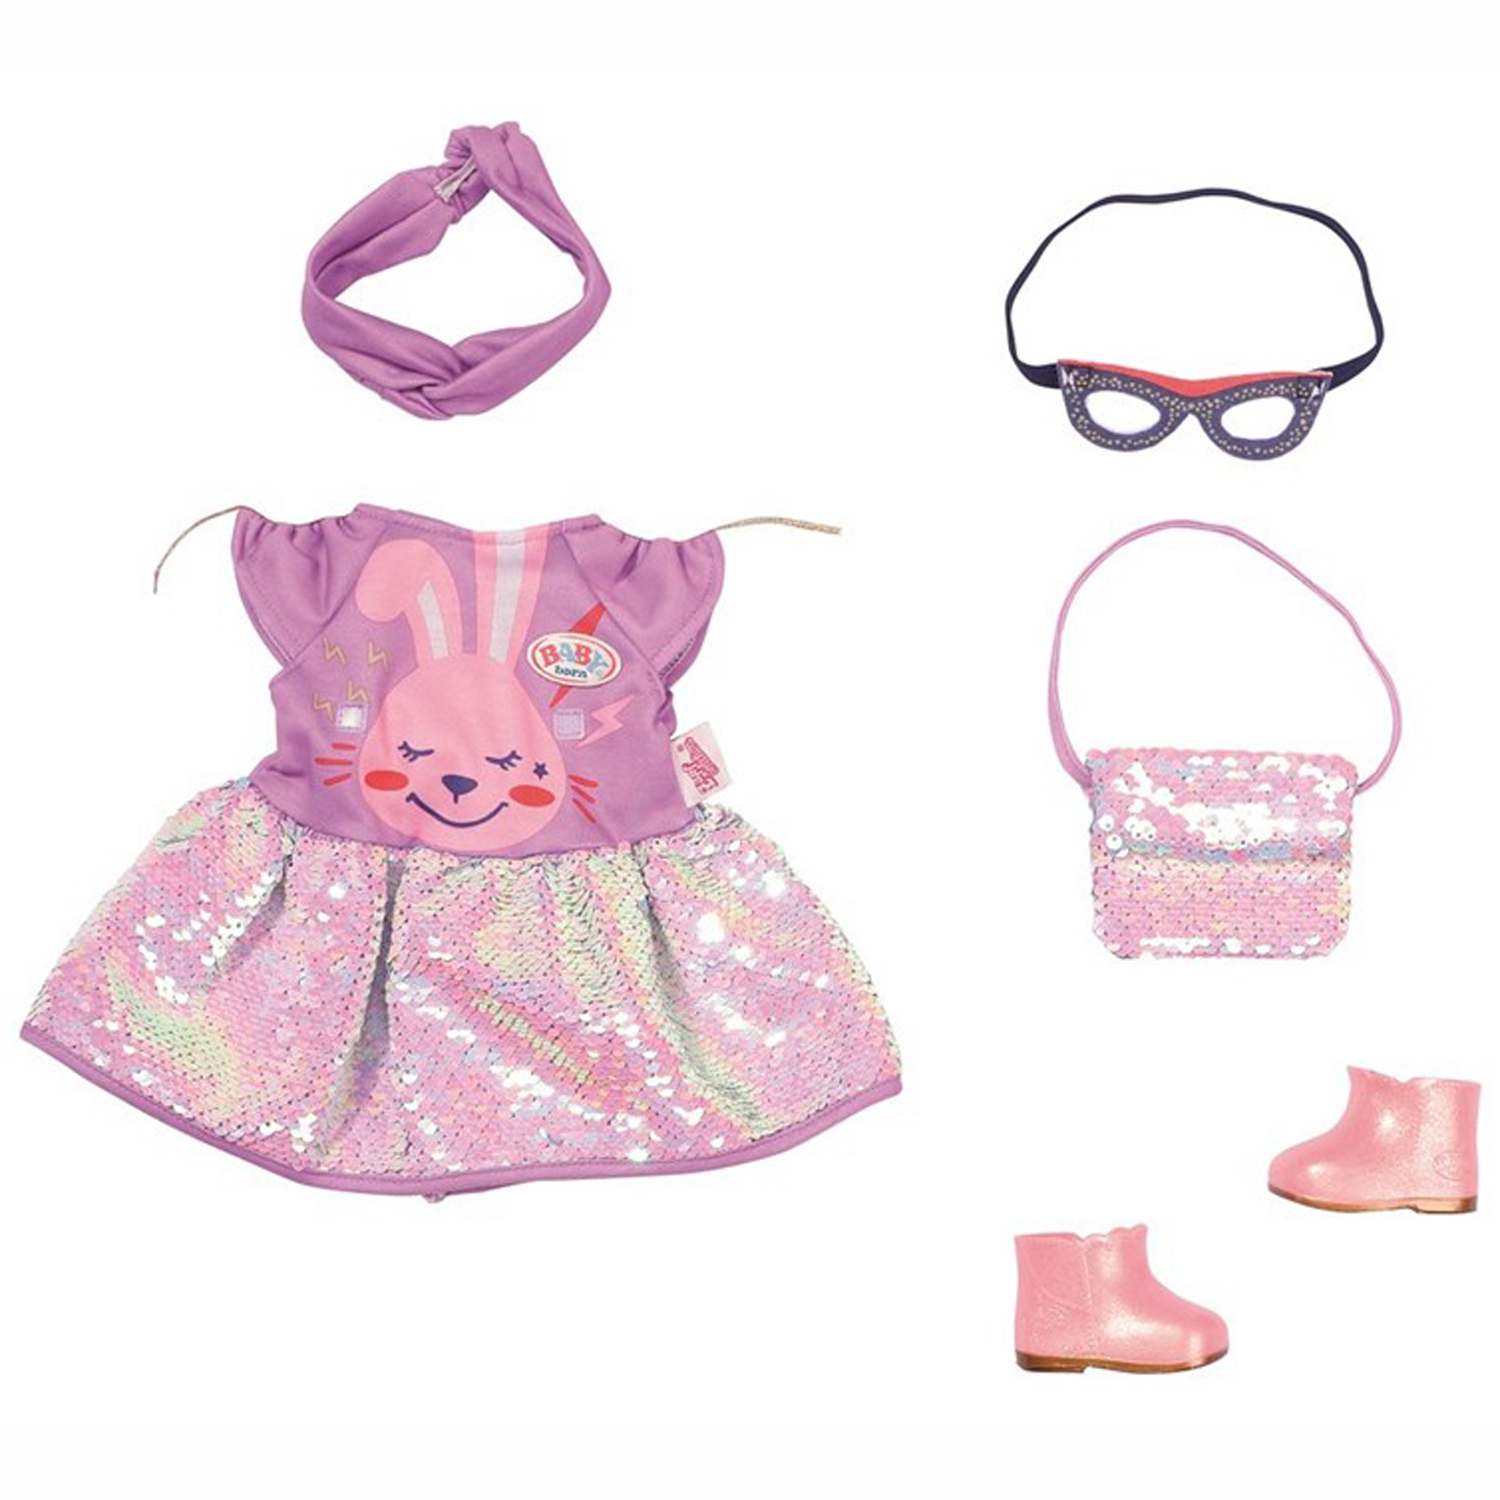 BABY Born Deluxe Happy Birthday Outfit 4